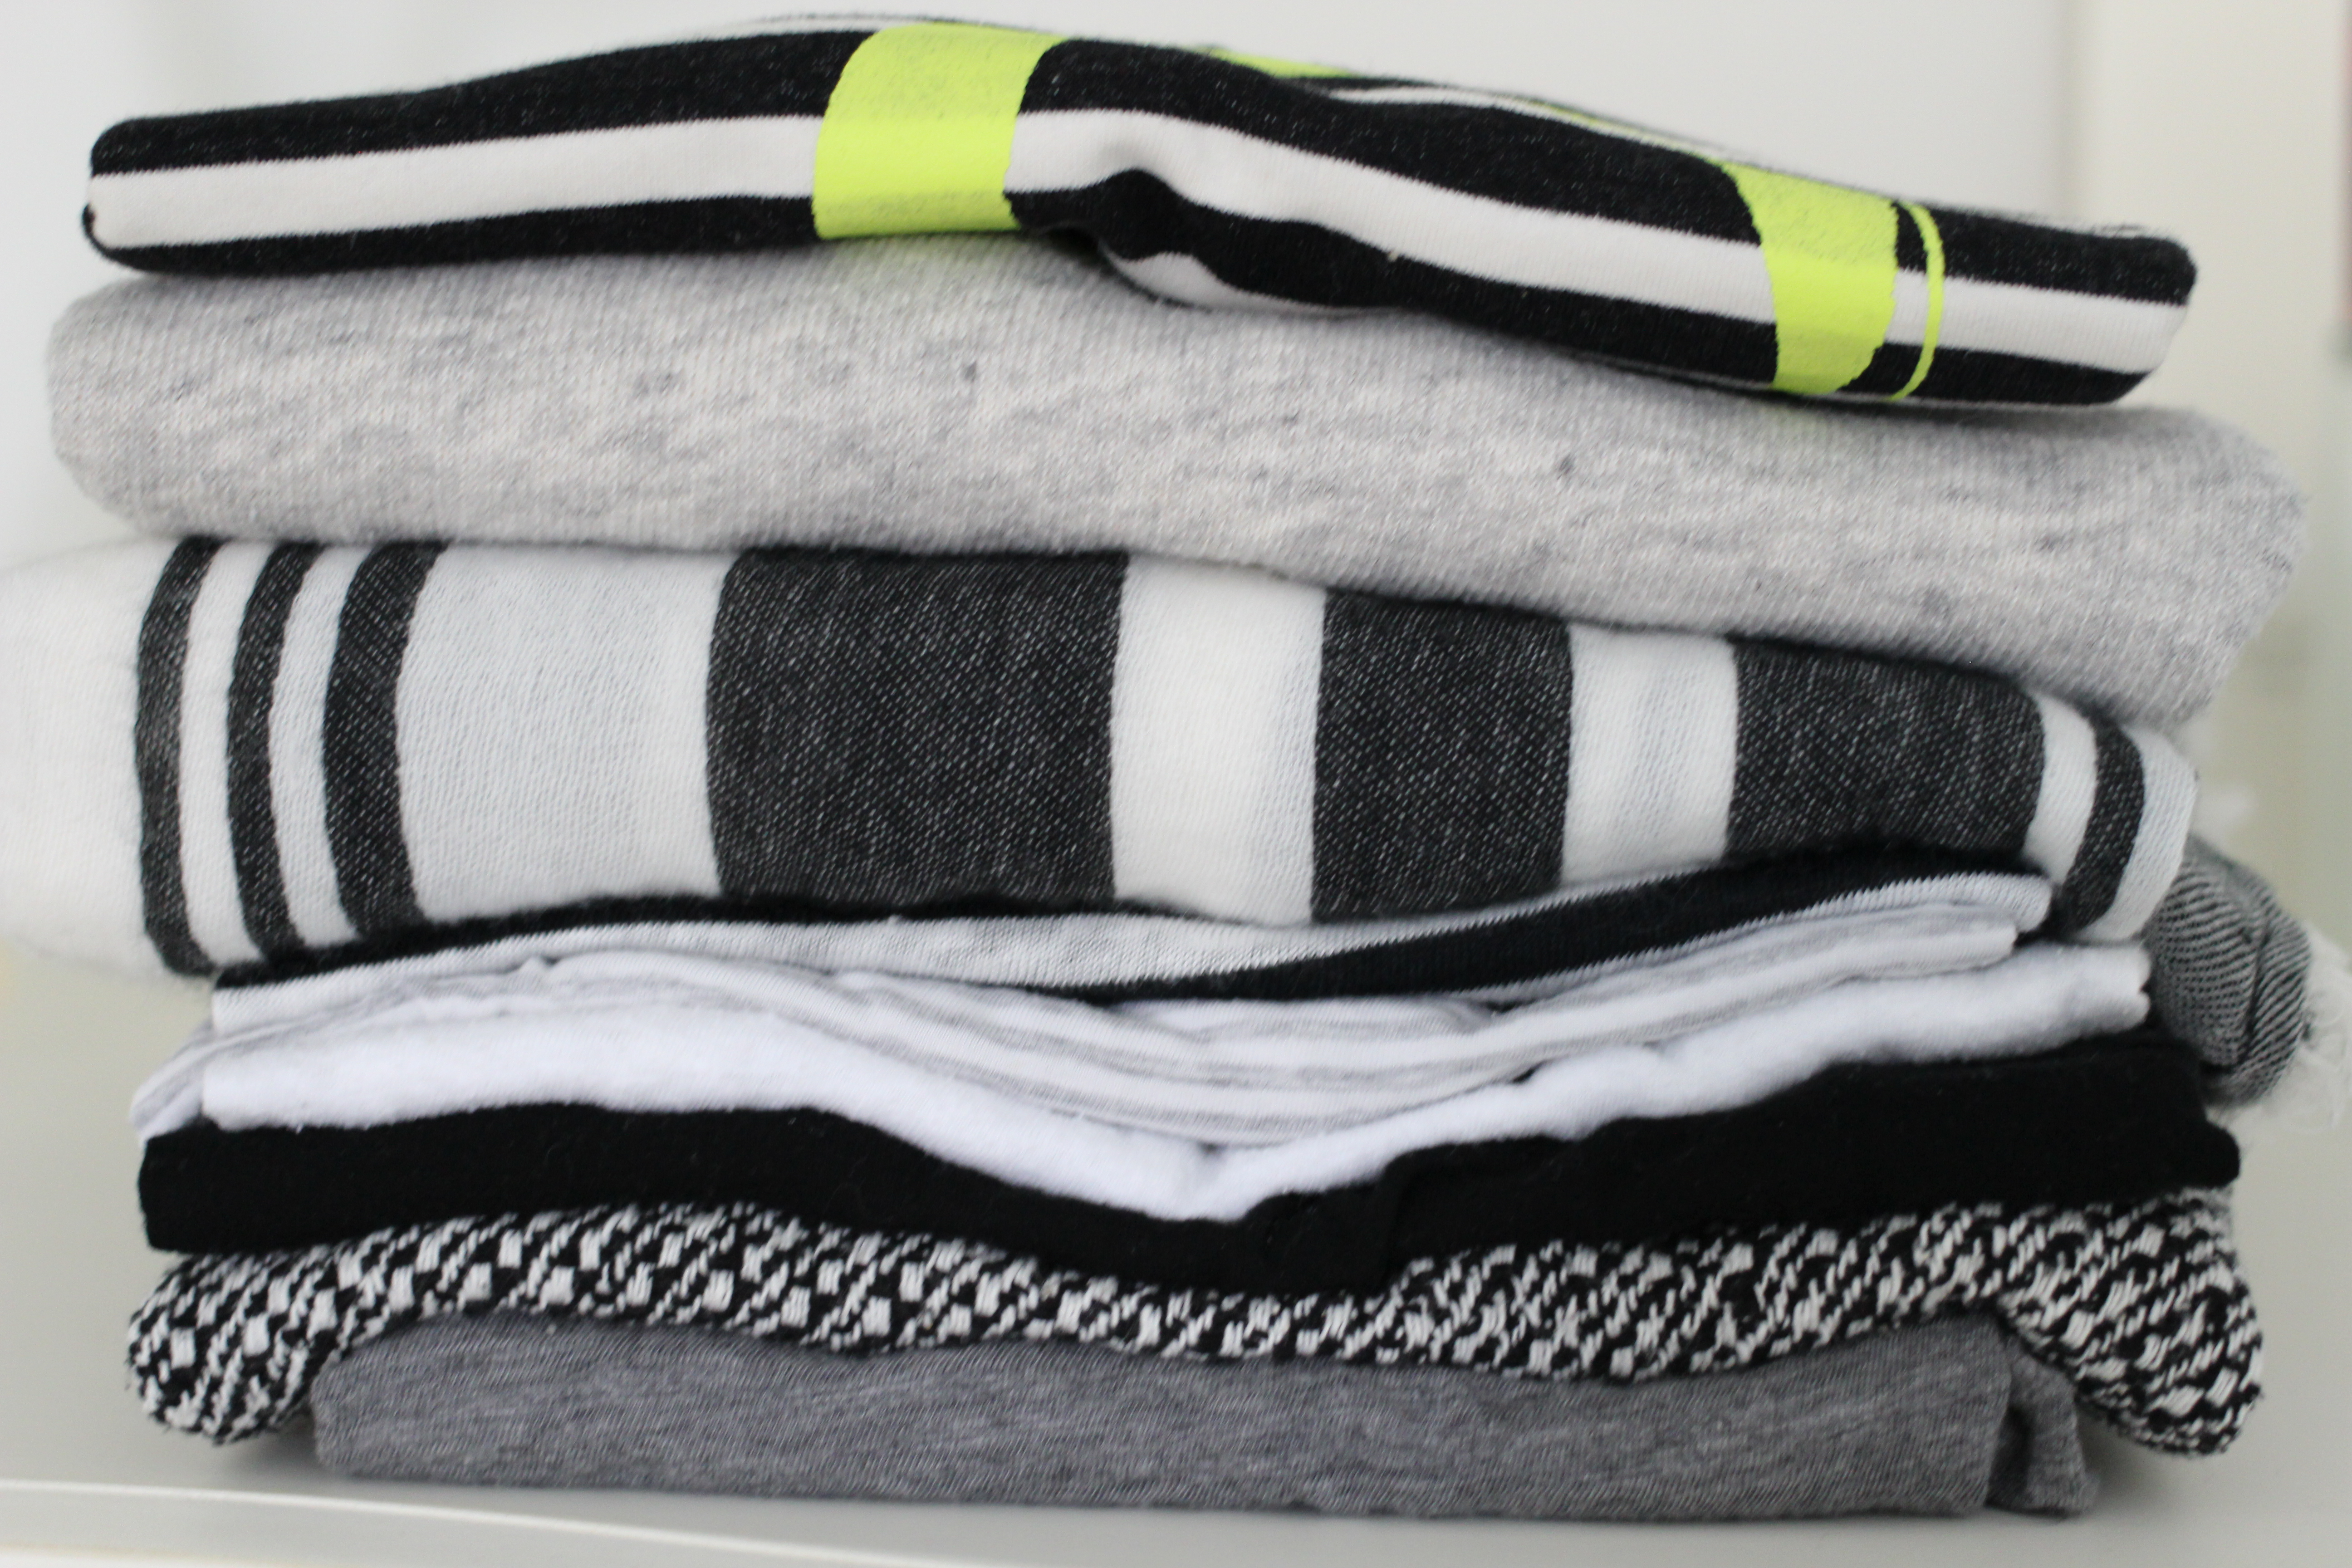 Fall Closet Clean Out: How to Make Room + $ At the Same Time